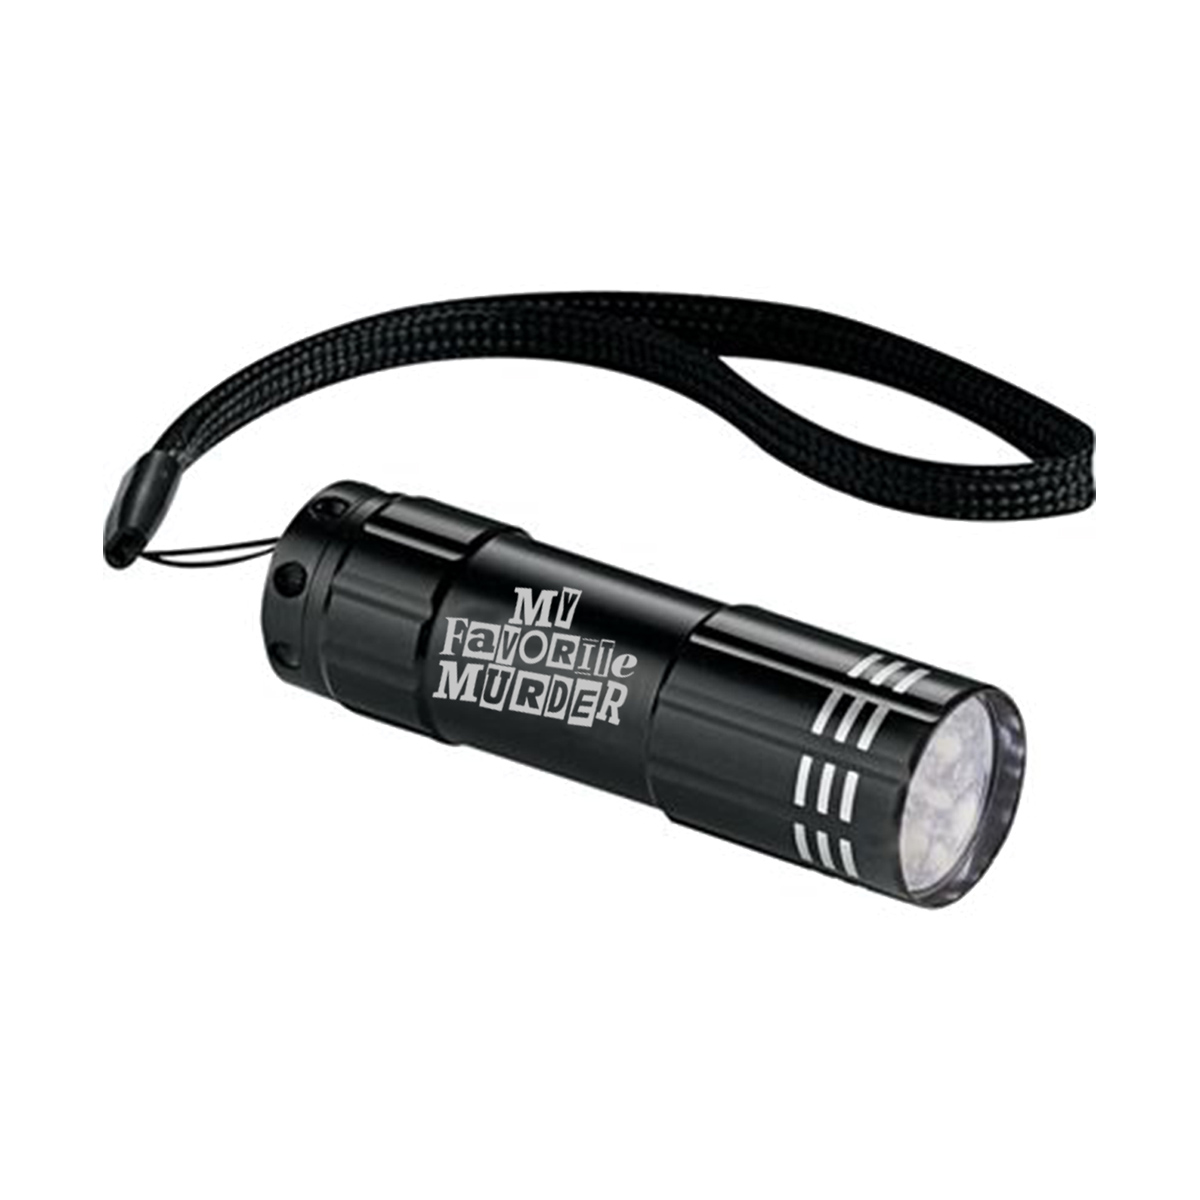 MFM Logo Flashlight